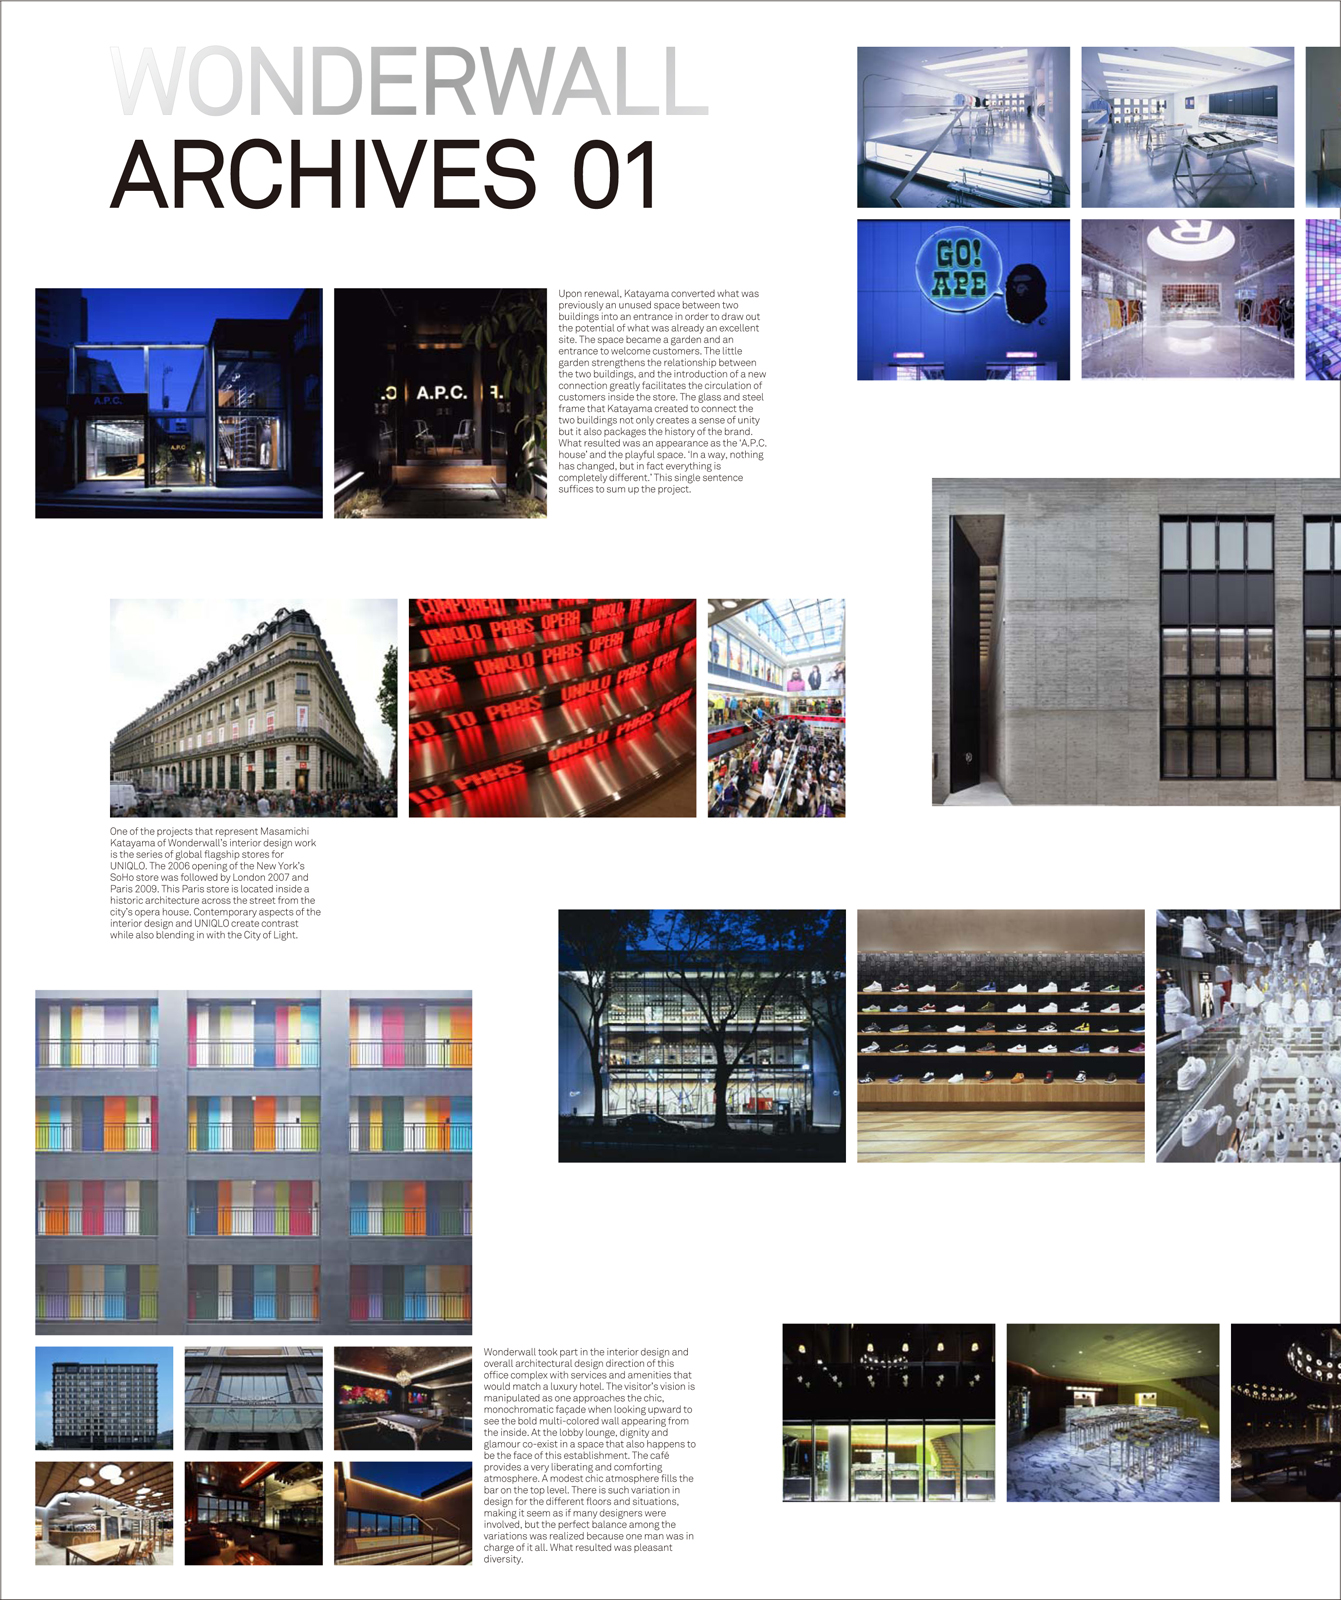 The cover of the new book Wonderwall Archives 01.